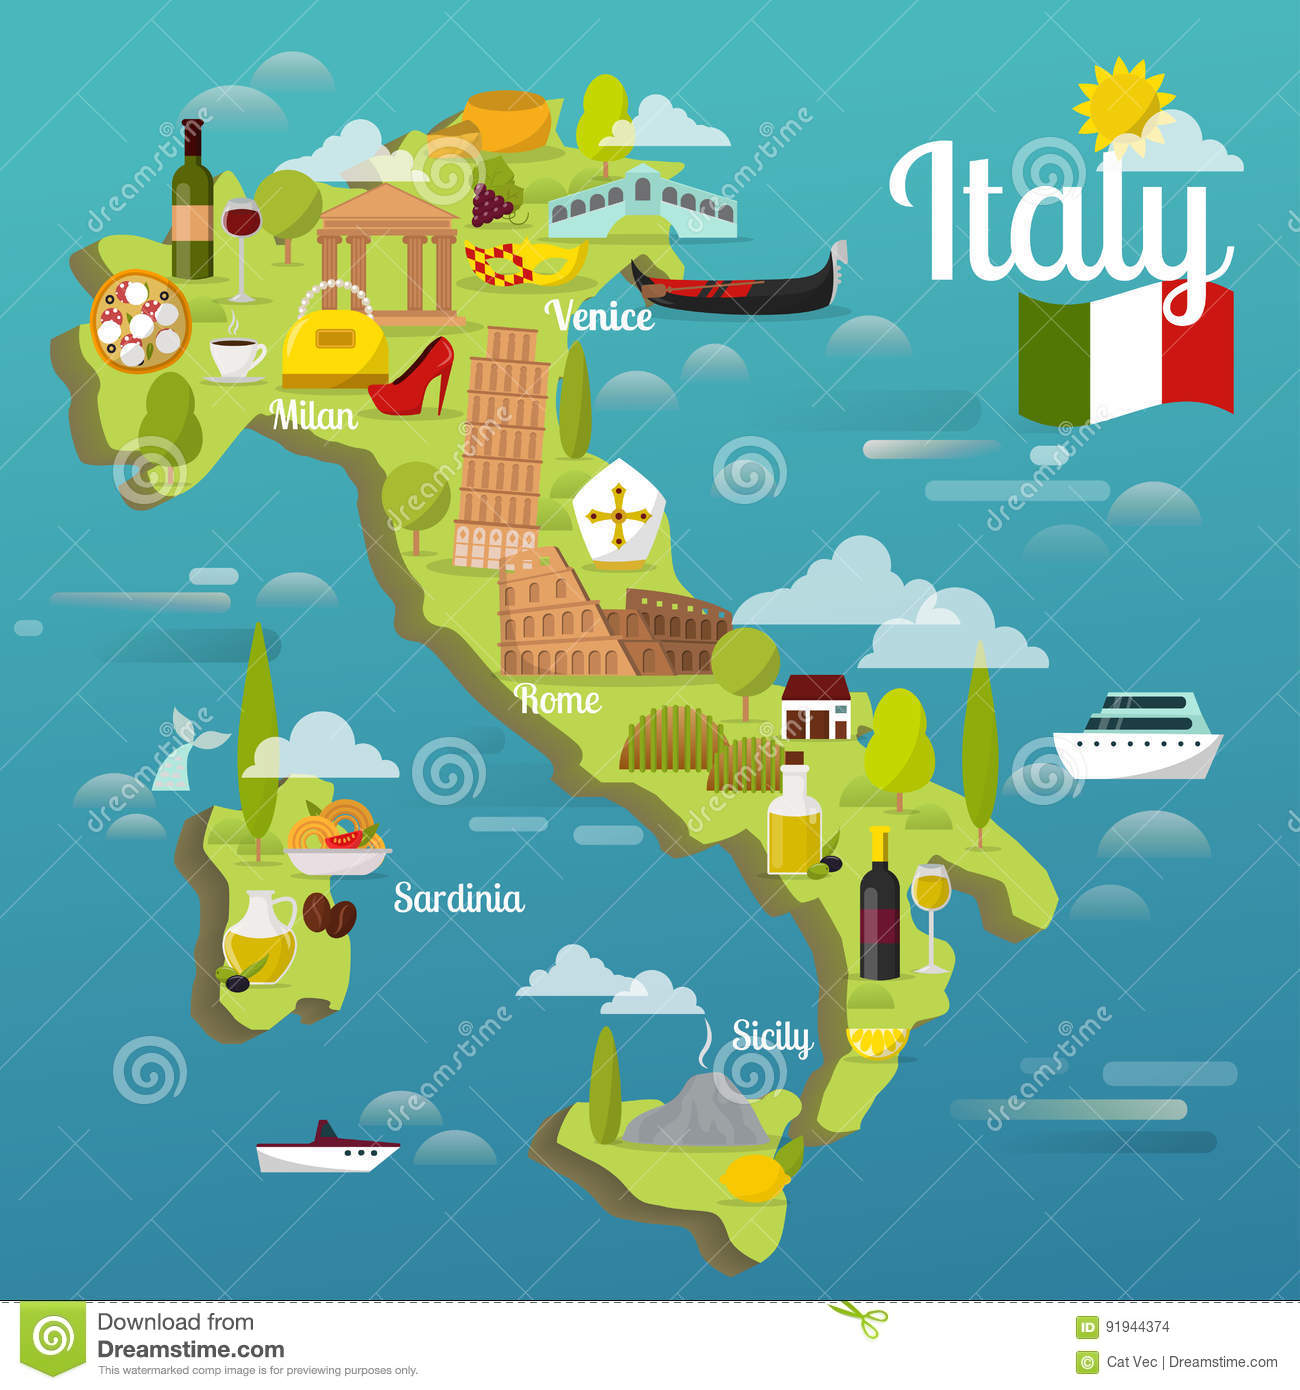 Colorful Italy Travel Map With Attraction Symbols Italian